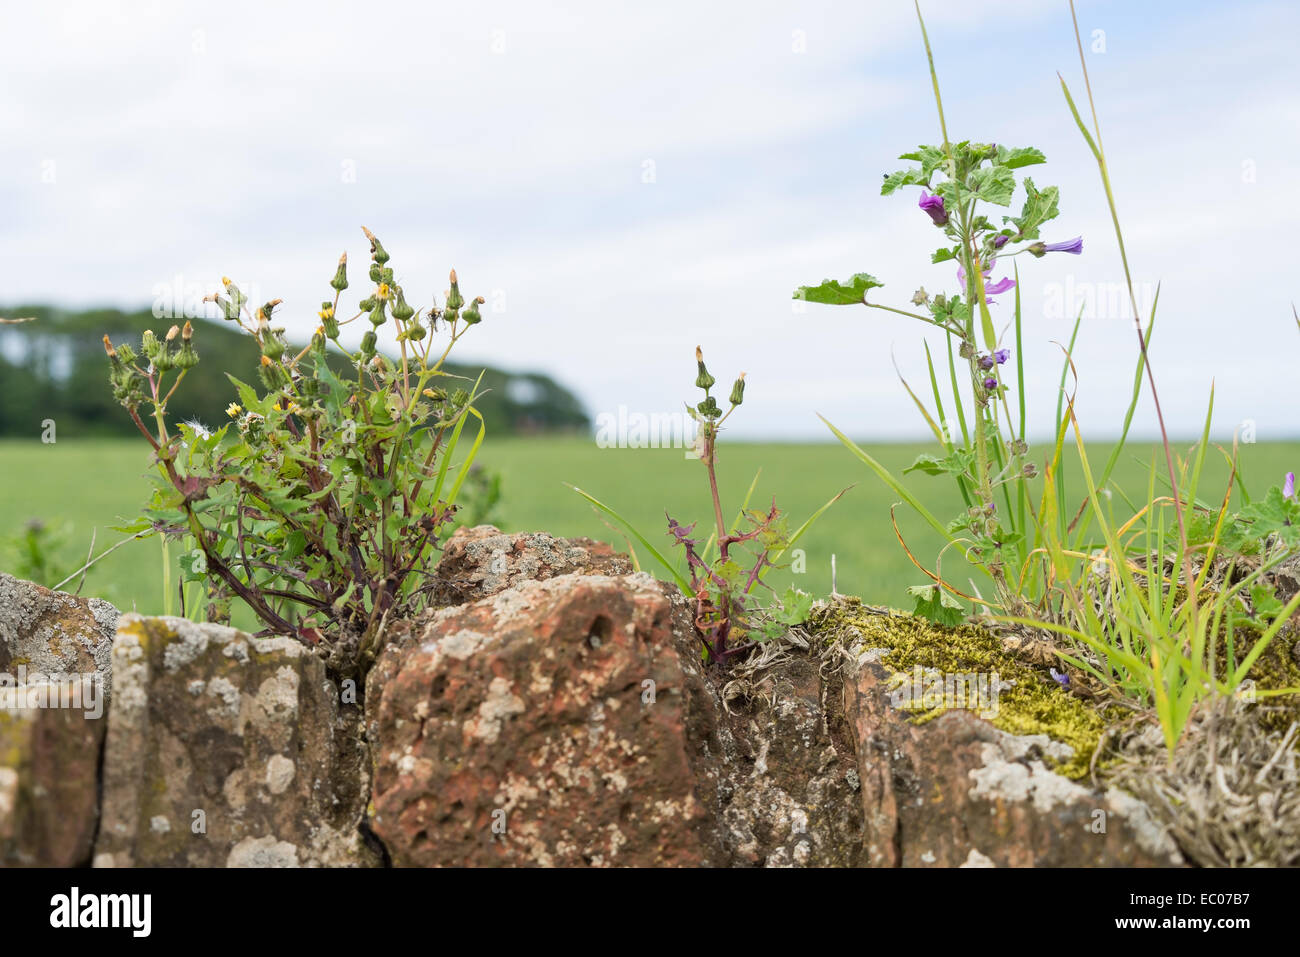 Wild plants and weeds growing on the top of an old stone field wall. - Stock Image